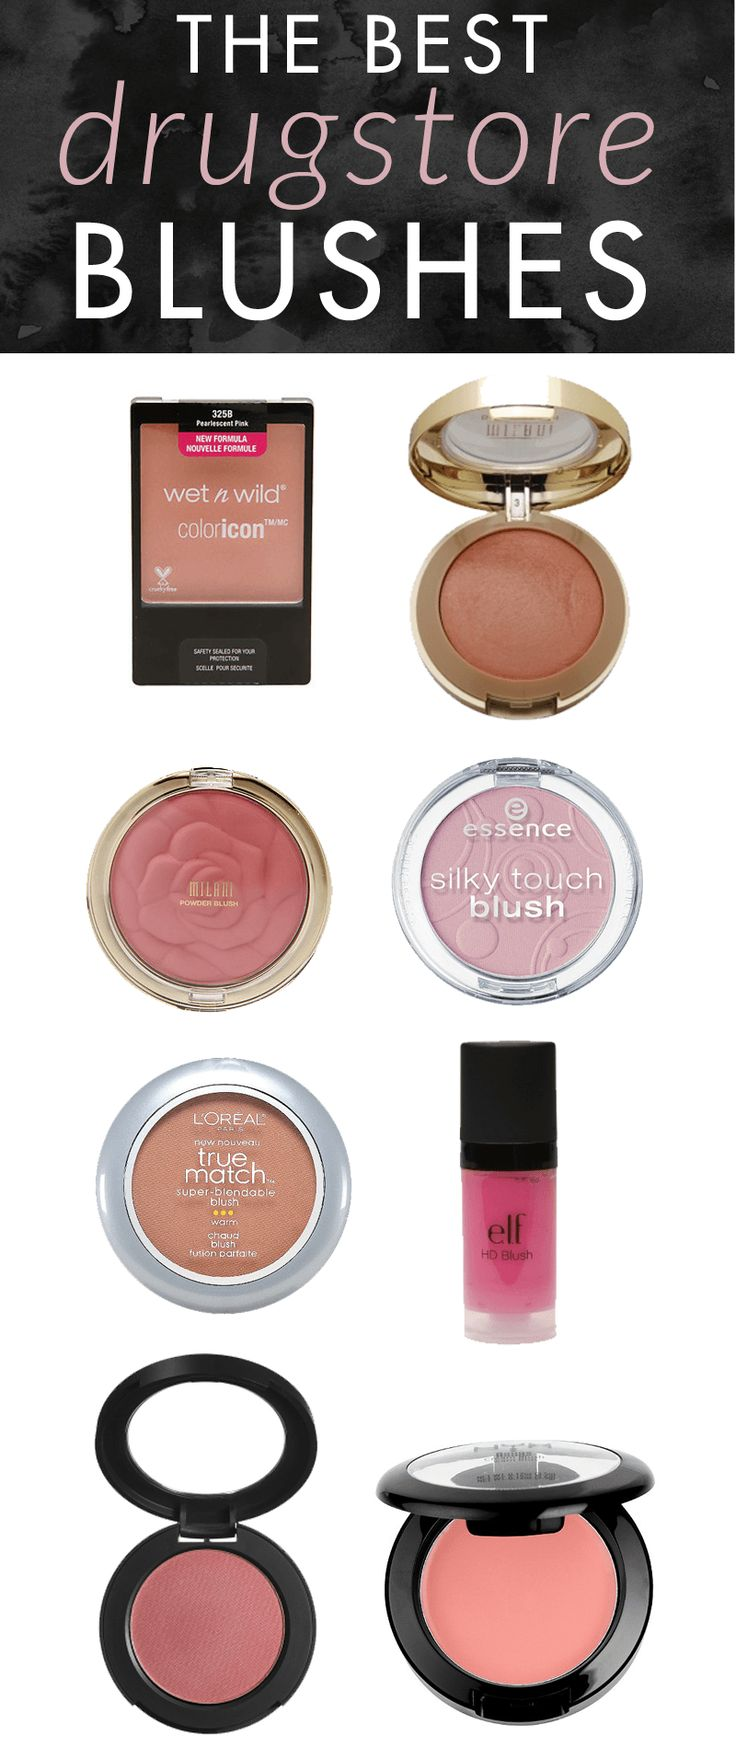 The Best Drugstore Blushes - beautiful blushes can definitely be found at the drugstore. These drugstore blushes have amazing quality and pigmentation. You'll love them! #blush #makeup #beautyblogger #shopping #drugstorebeauty #drugstoremakeup